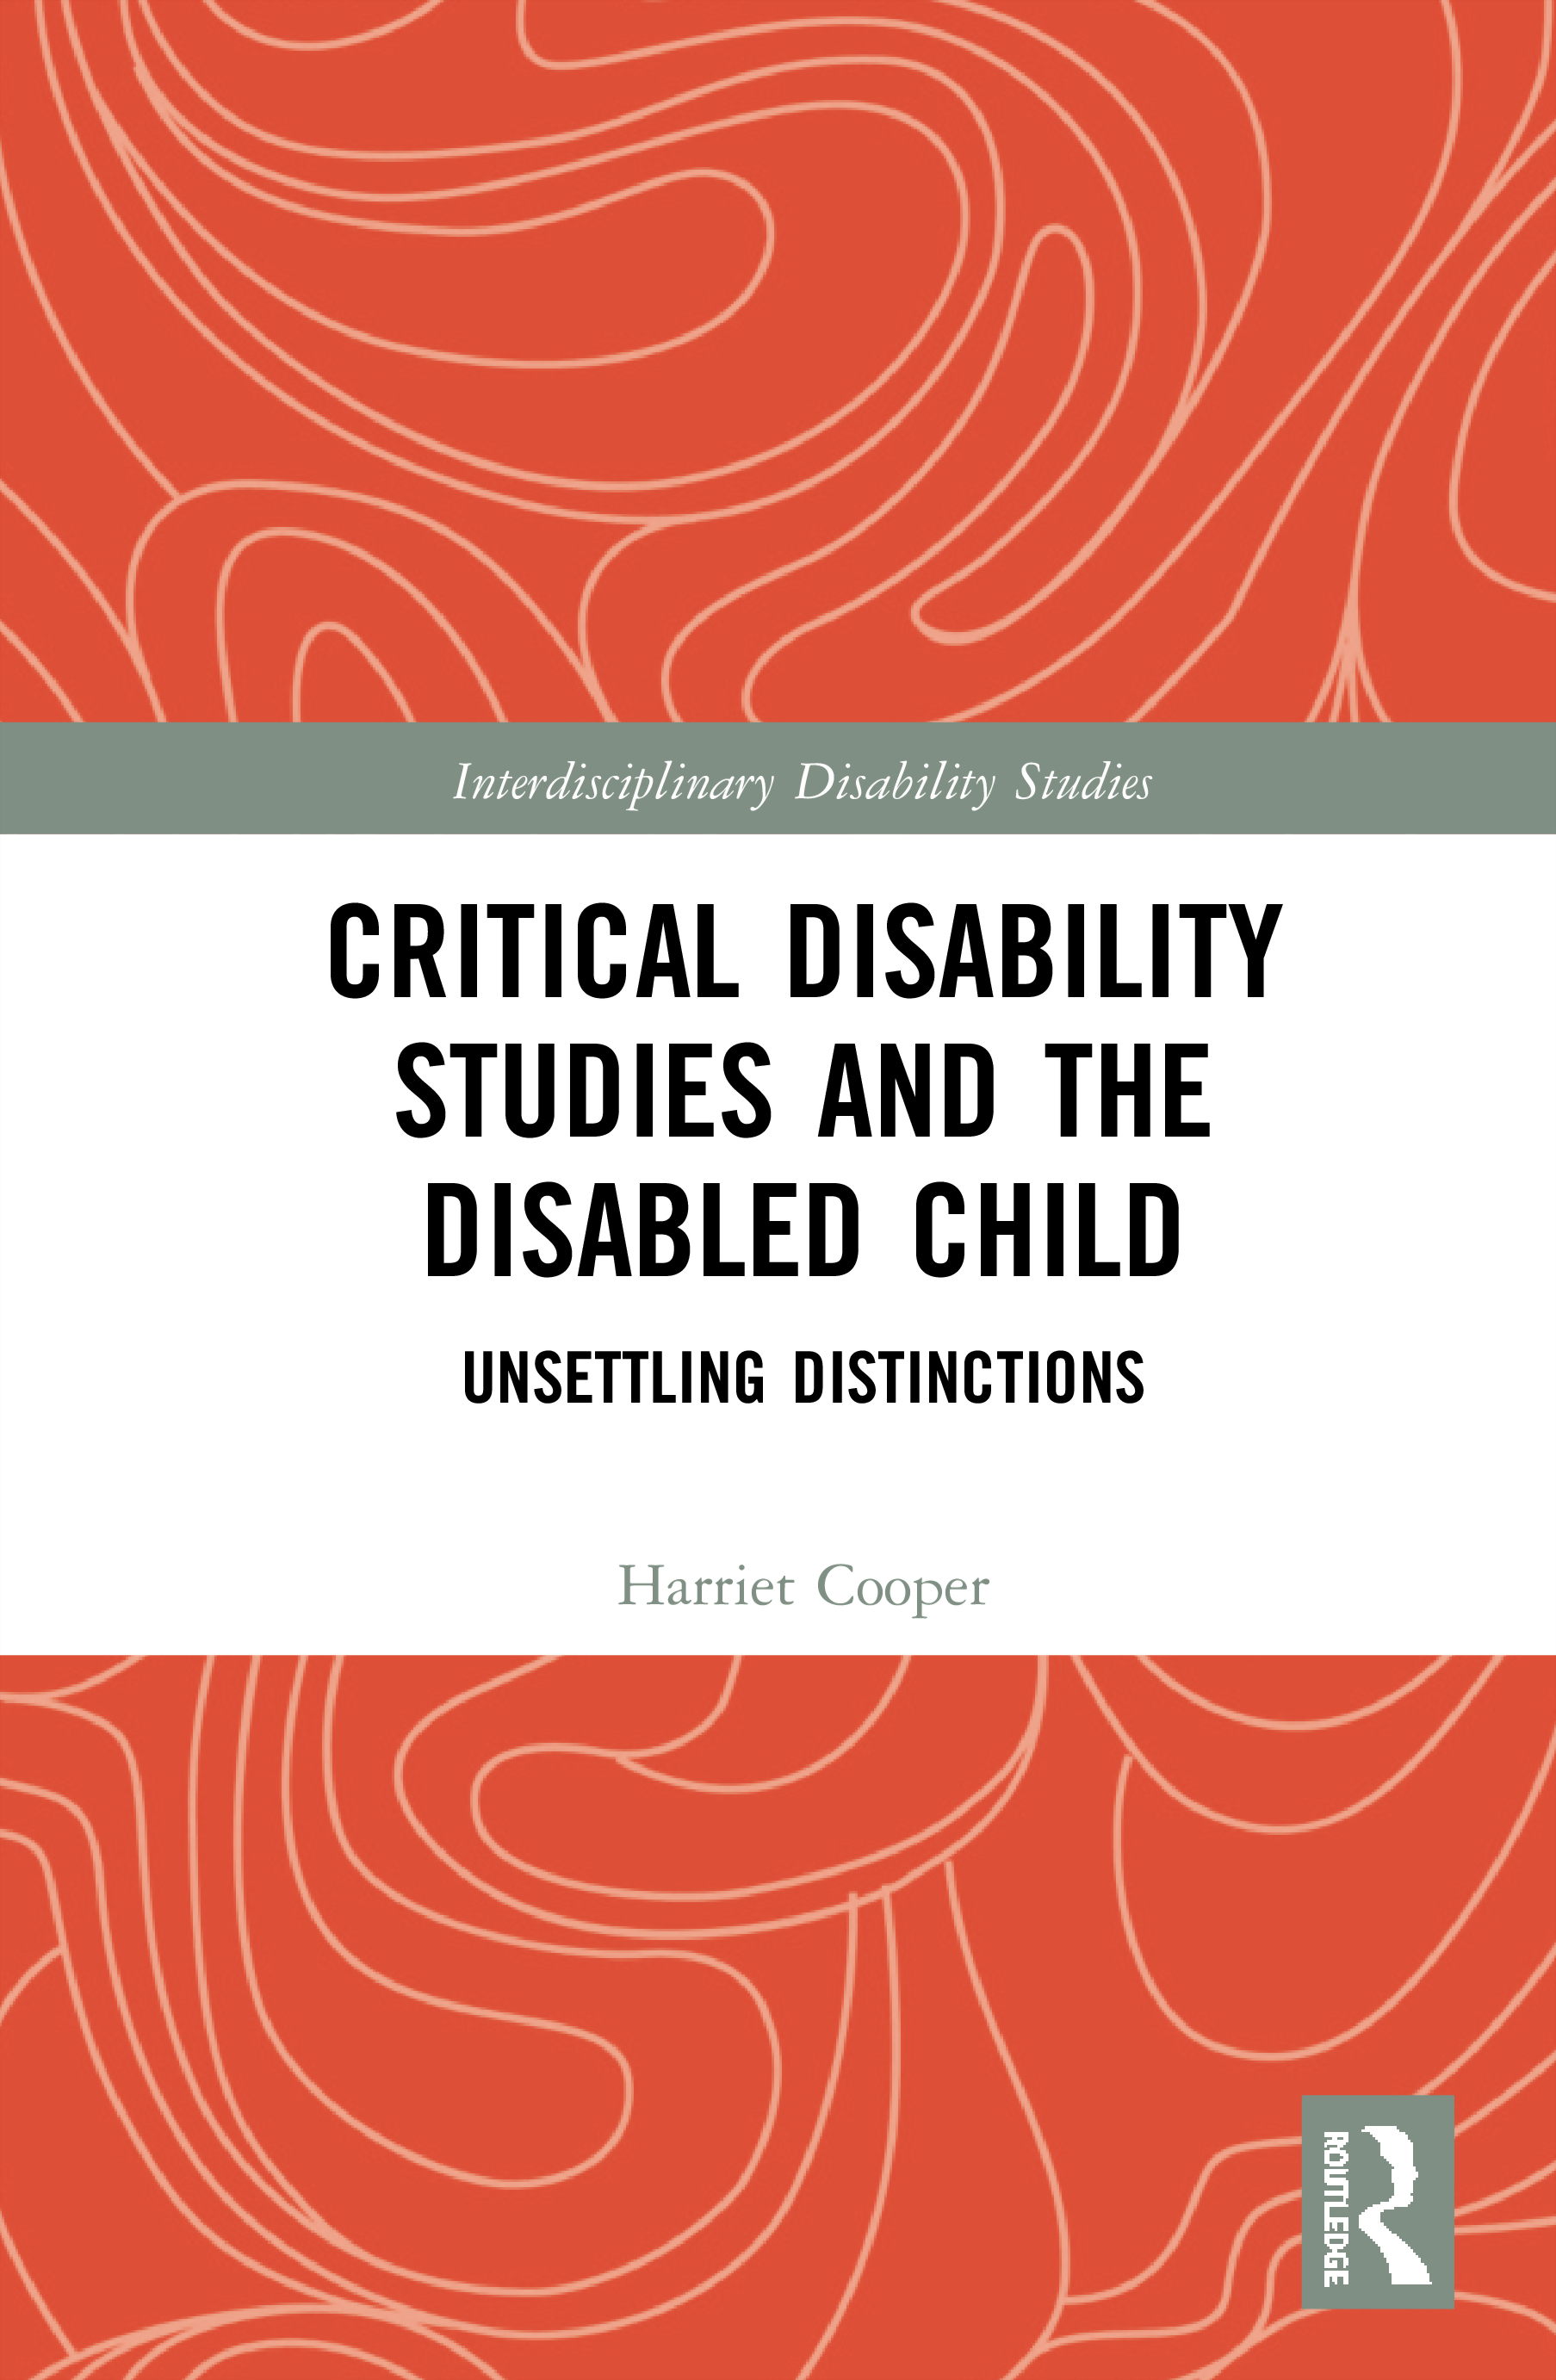 Critical Disability Studies and the Disabled Child: Unsettling Distinctions, 1st Edition (Hardback) book cover